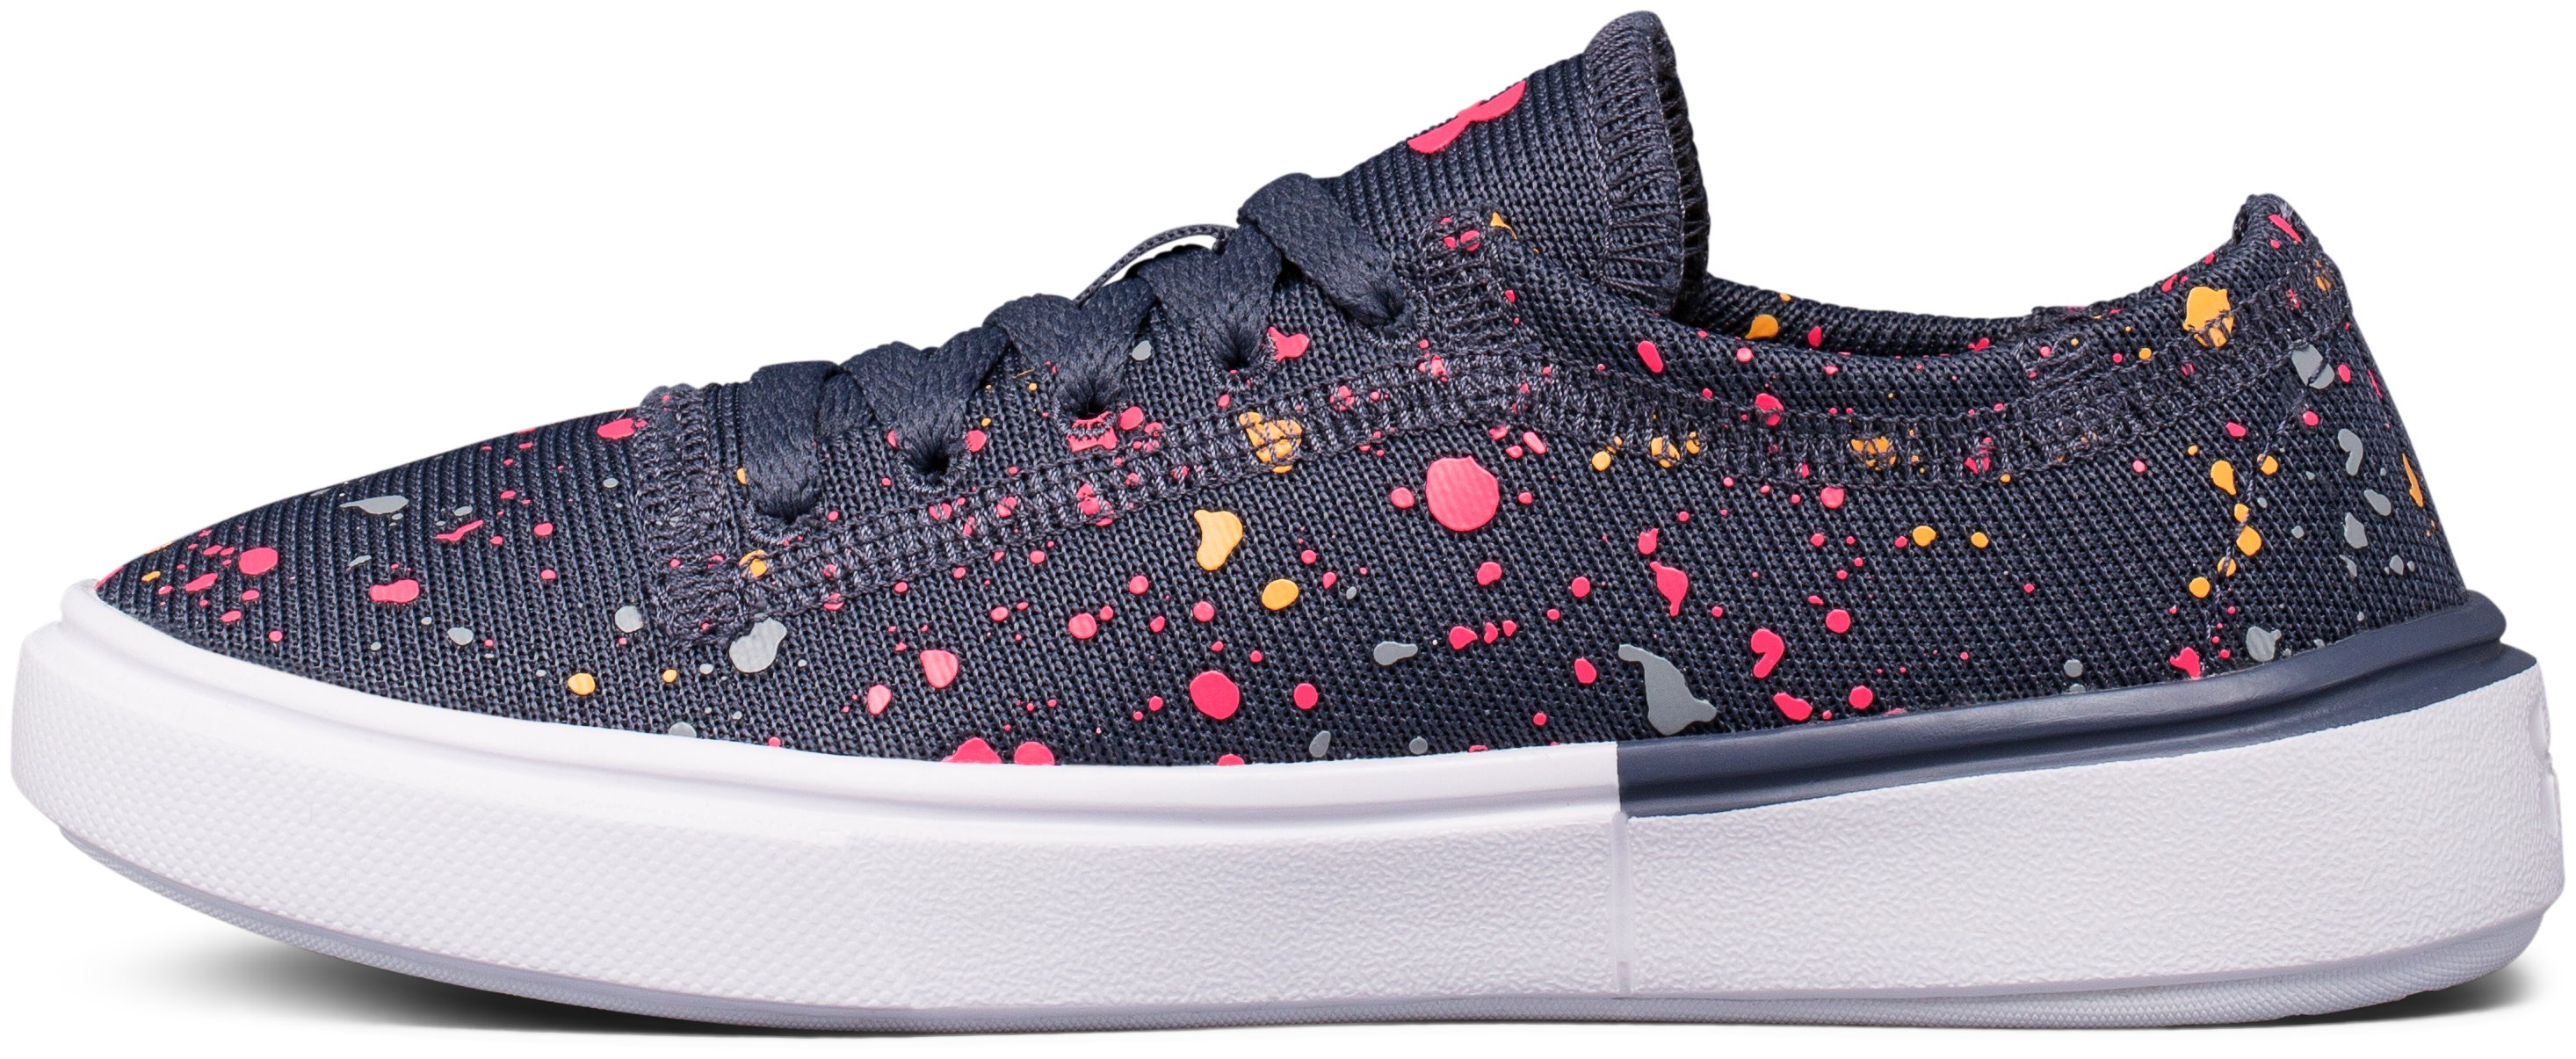 Girls' Pre-School UA KickIt2 Splatter Lifestyle Shoes, APOLLO GRAY, undefined